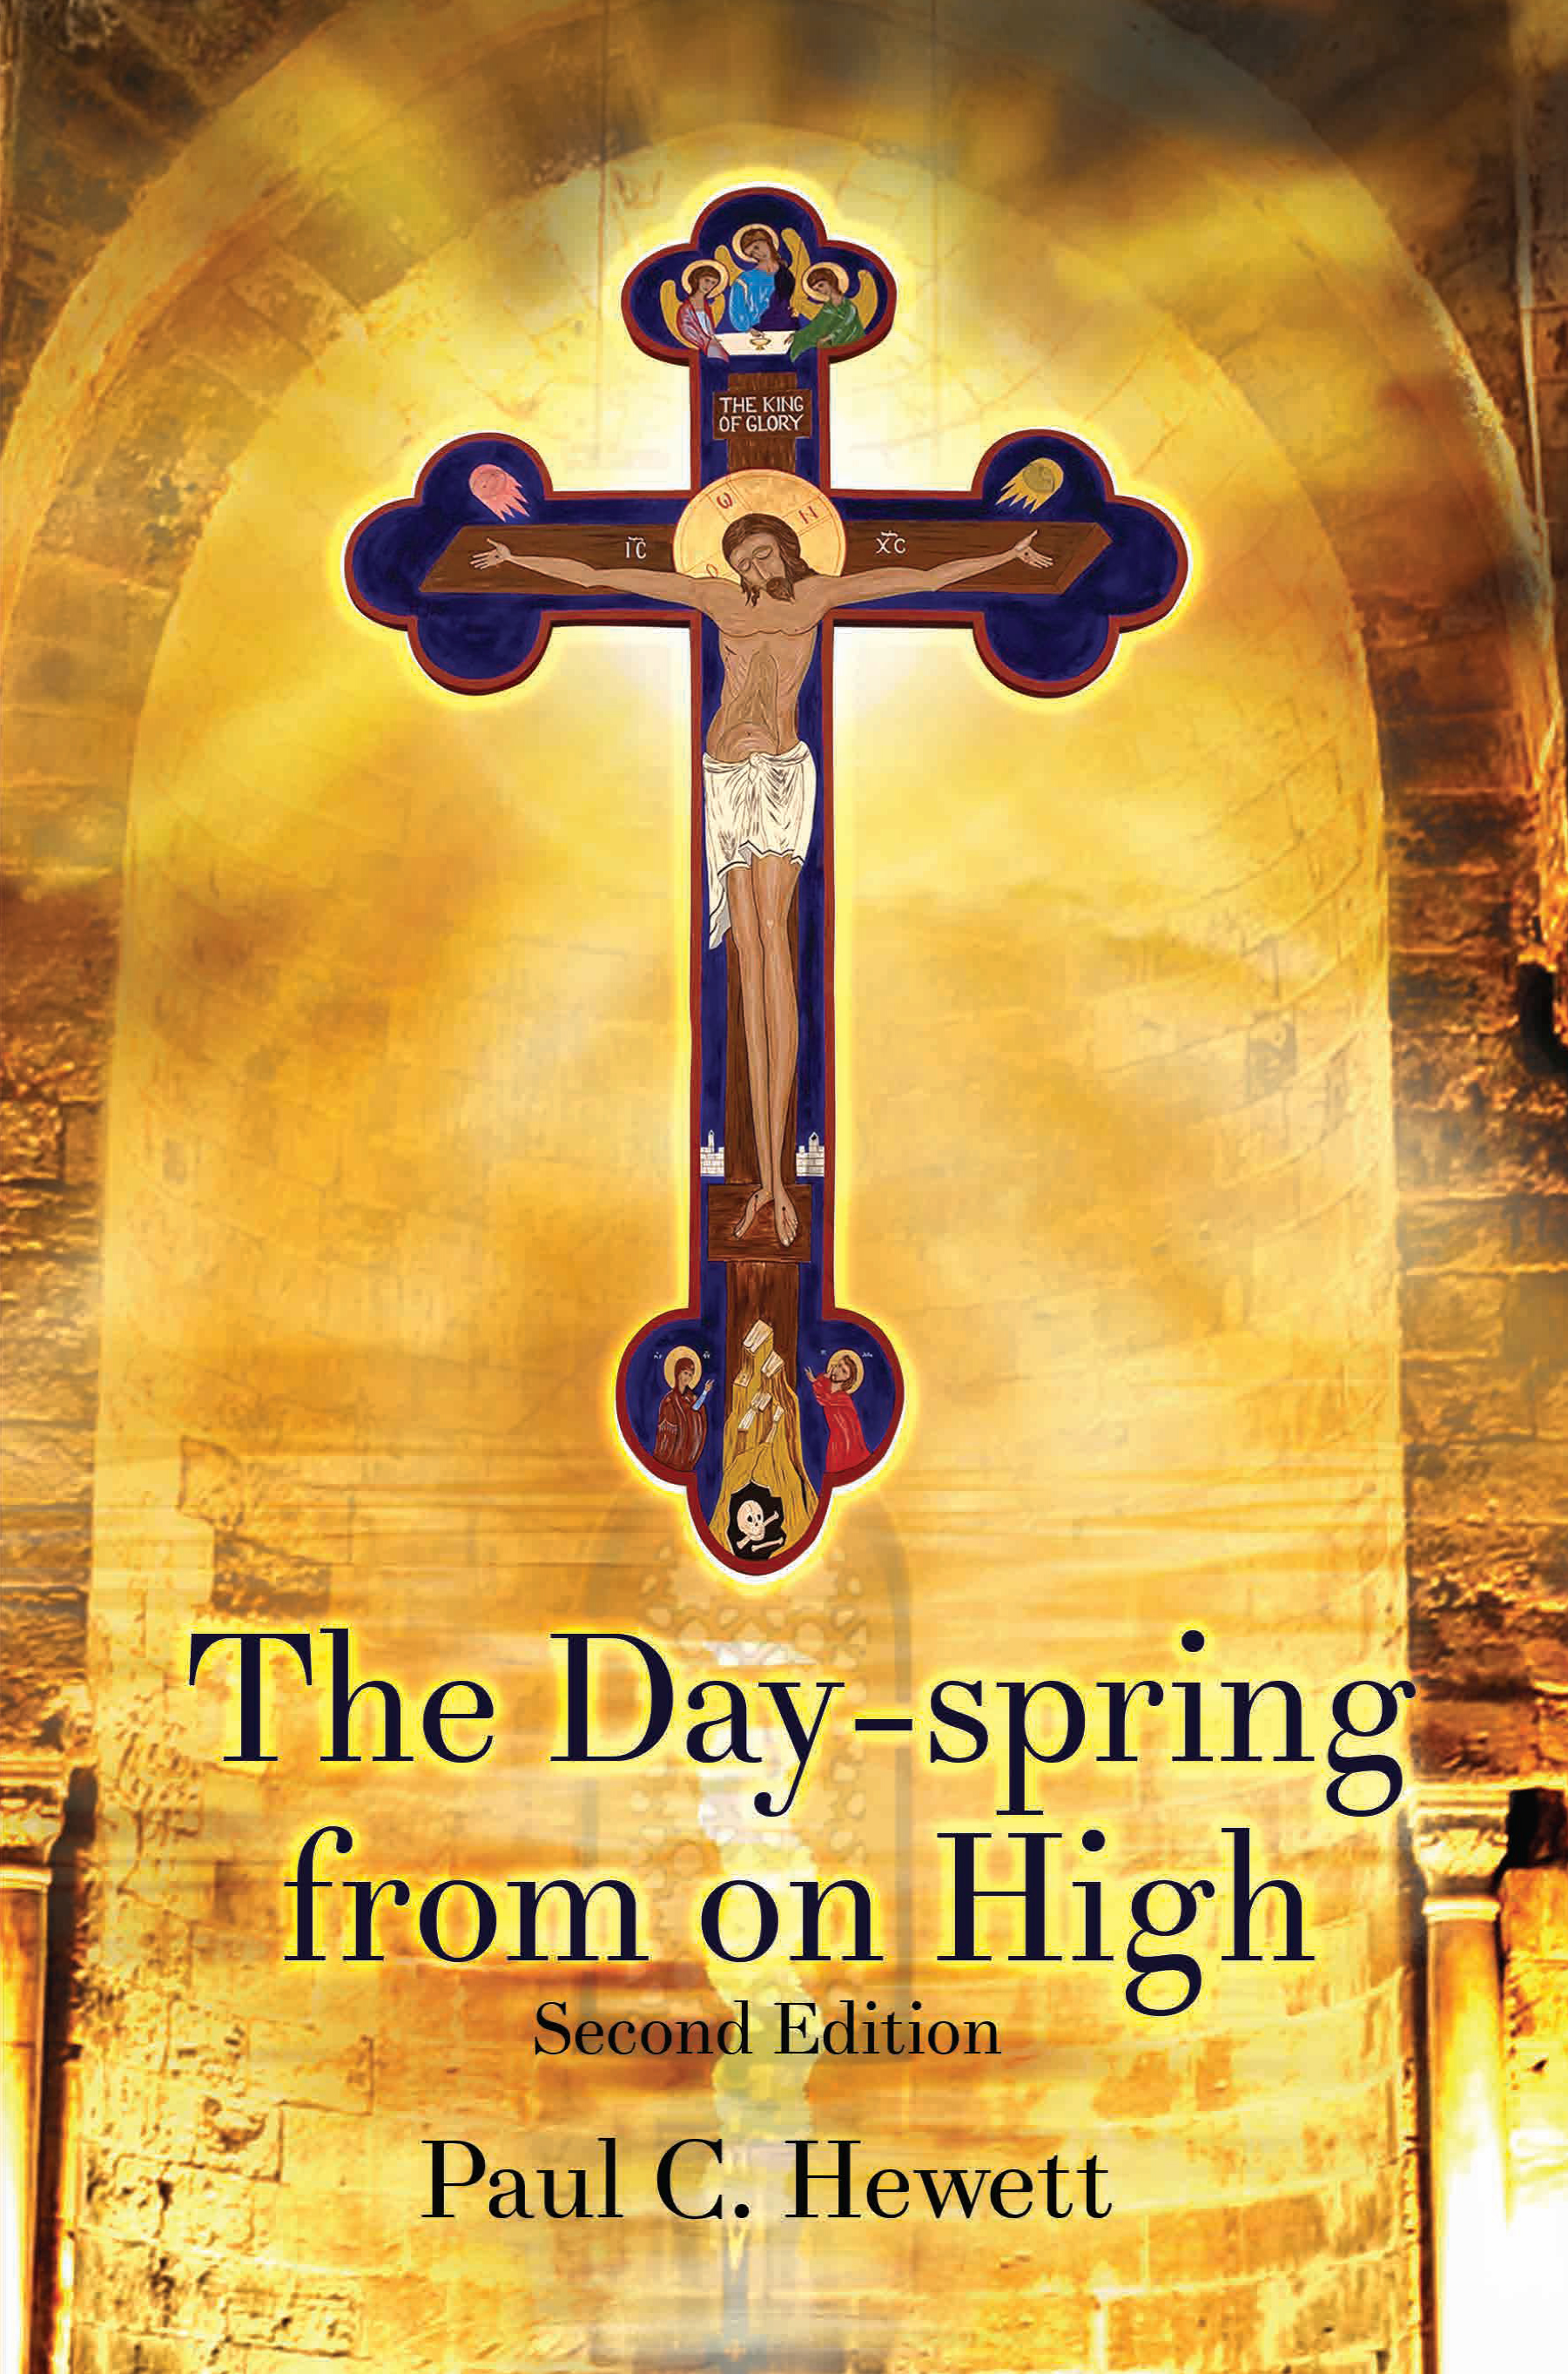 The Day-spring from on High Renews Discussion on the Church's Epic Battle